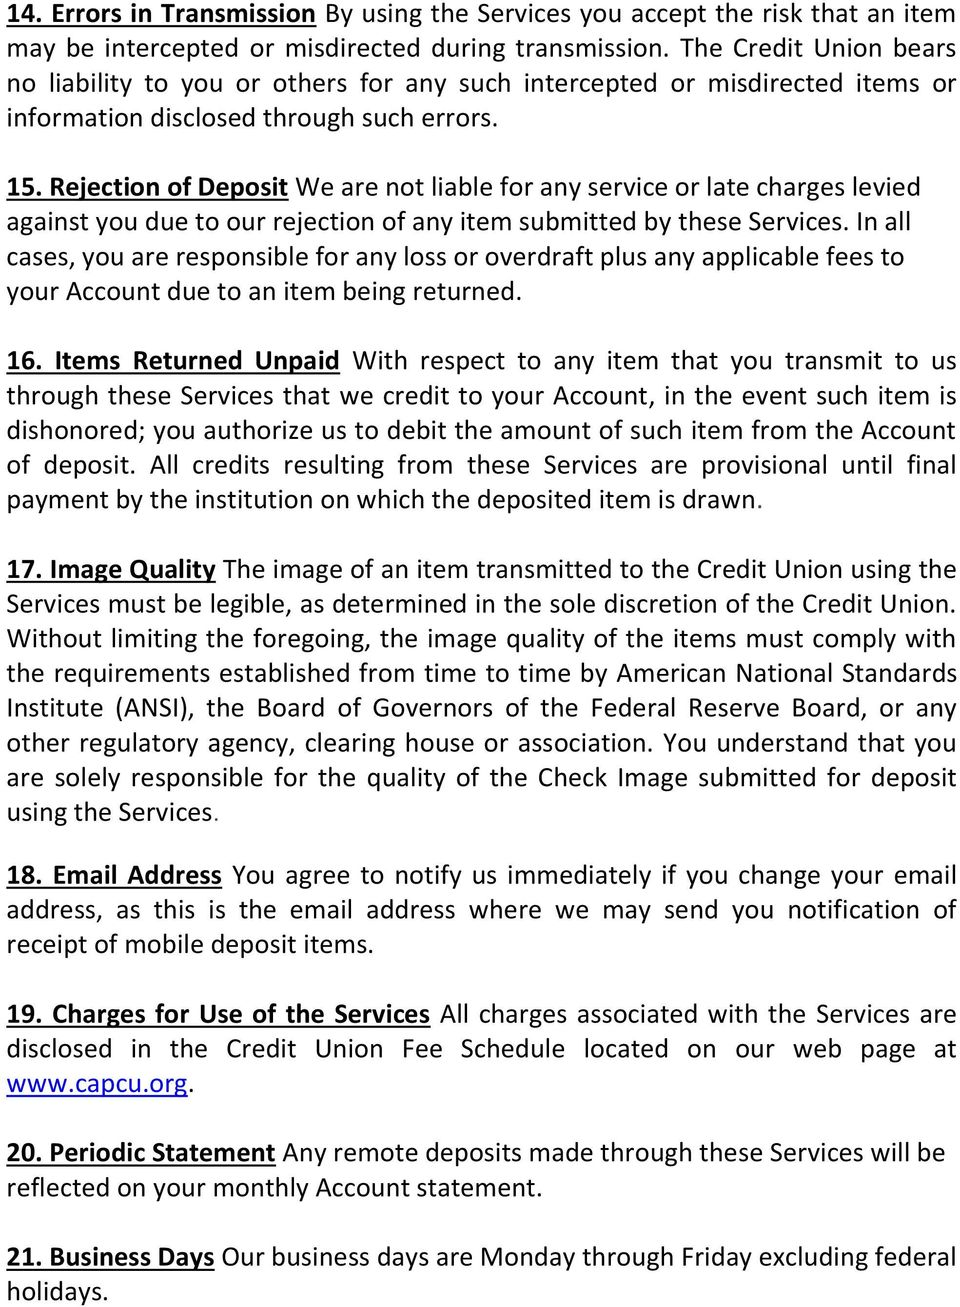 Rejection of Deposit We are not liable for any service or late charges levied against you due to our rejection of any item submitted by these Services.